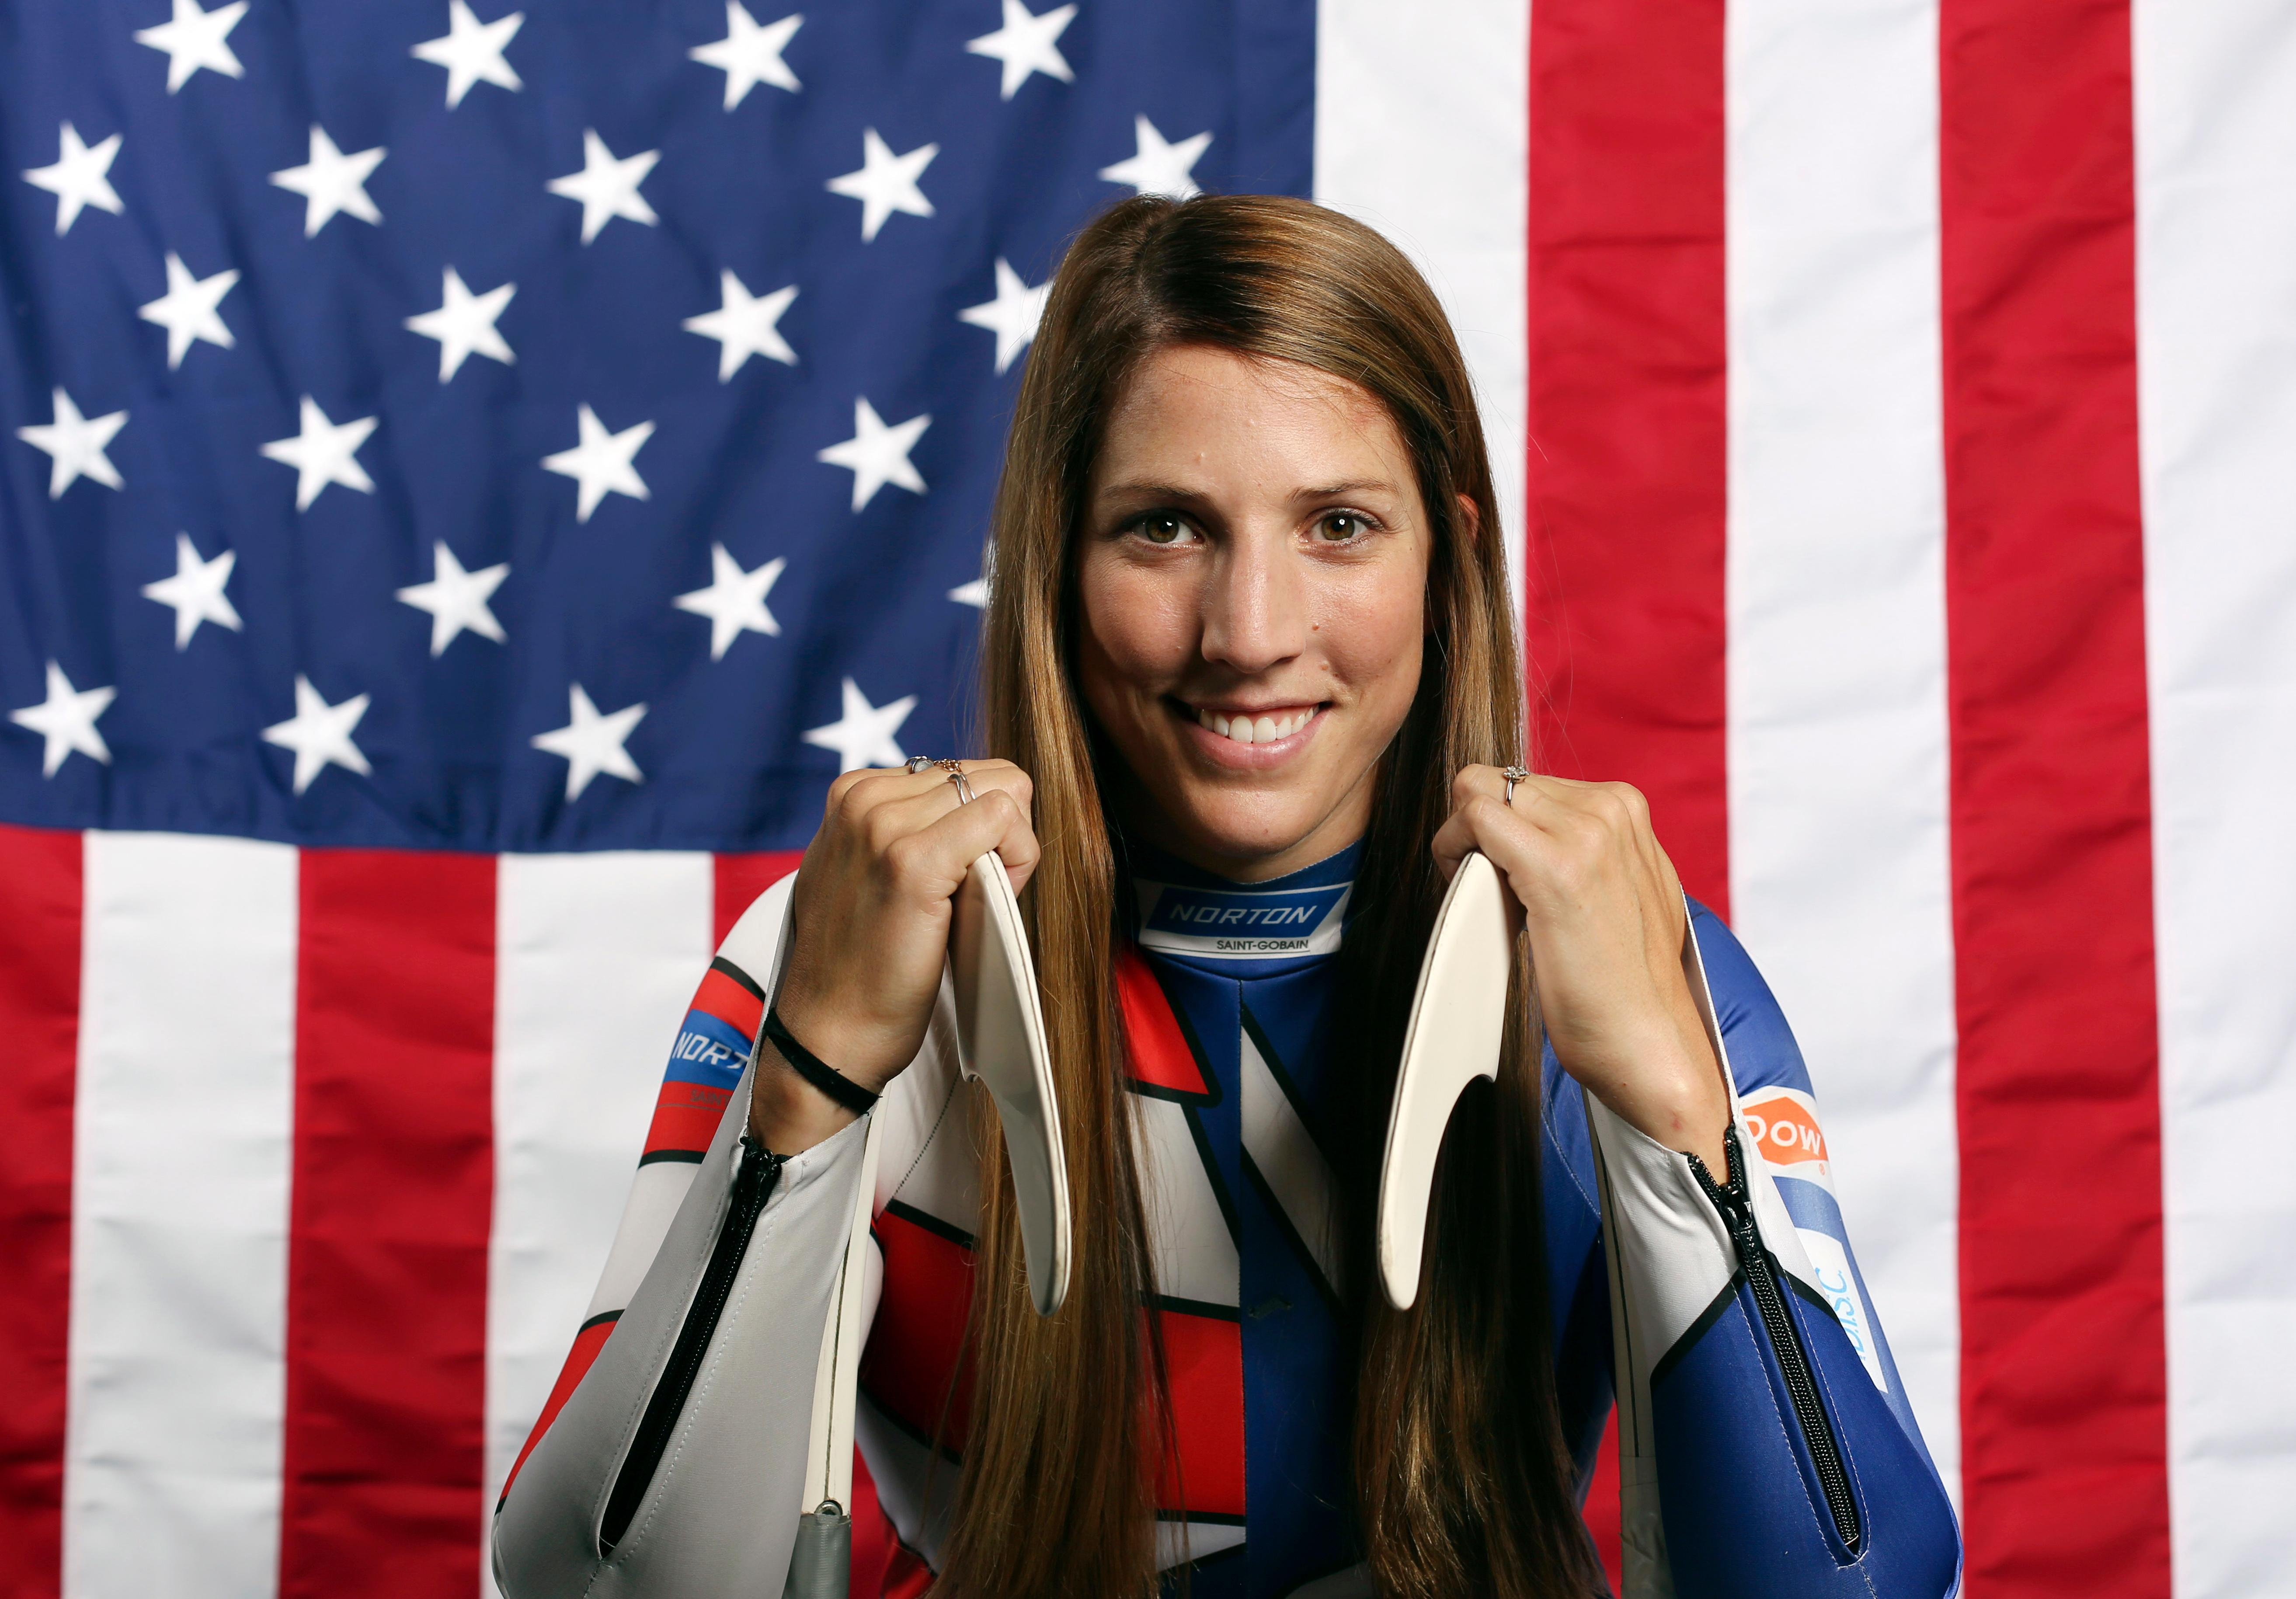 FILE - In this Sept. 25, 2017, file photo, United States Olympic Winter Games luge hopeful Erin Hamlin poses for a portrait at the 2017 Team USA Media Summit in Park City, Utah. Hamlin will carry the U.S. flag into Friday night's opening ceremony at the Pyeongchang Olympics on Feb. 9, 2018. The four-time Olympic luger was chosen by fellow Team USA Olympians for the honor. Hamlin is retiring at the end of these Olympics, after nearly two decades of racing competitively. (AP Photo/Rick Bowmer, File)